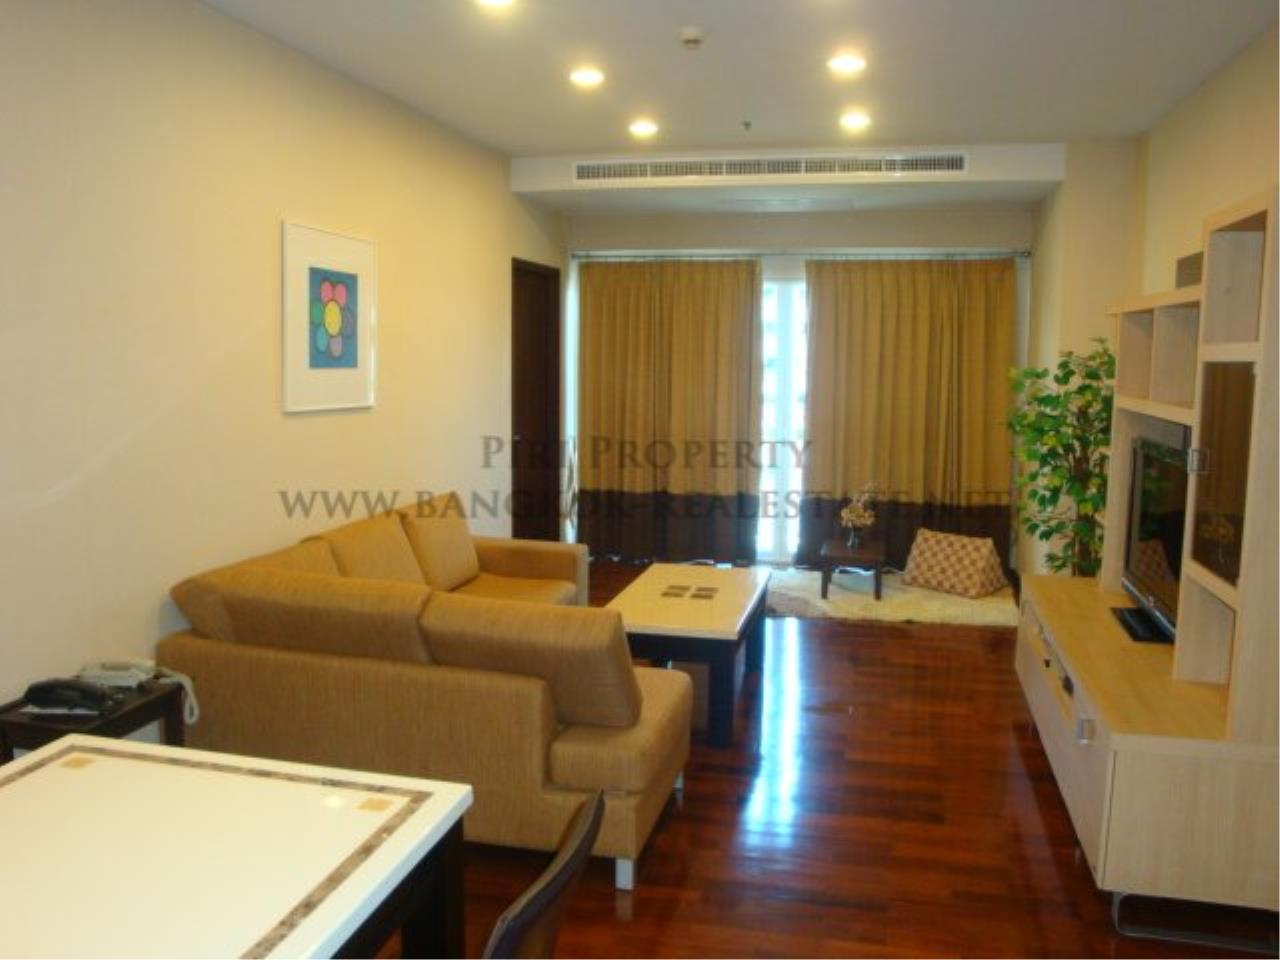 Piri Property Agency's Spacious One Bedroom Condo in Thonglor with 78 SQM 4